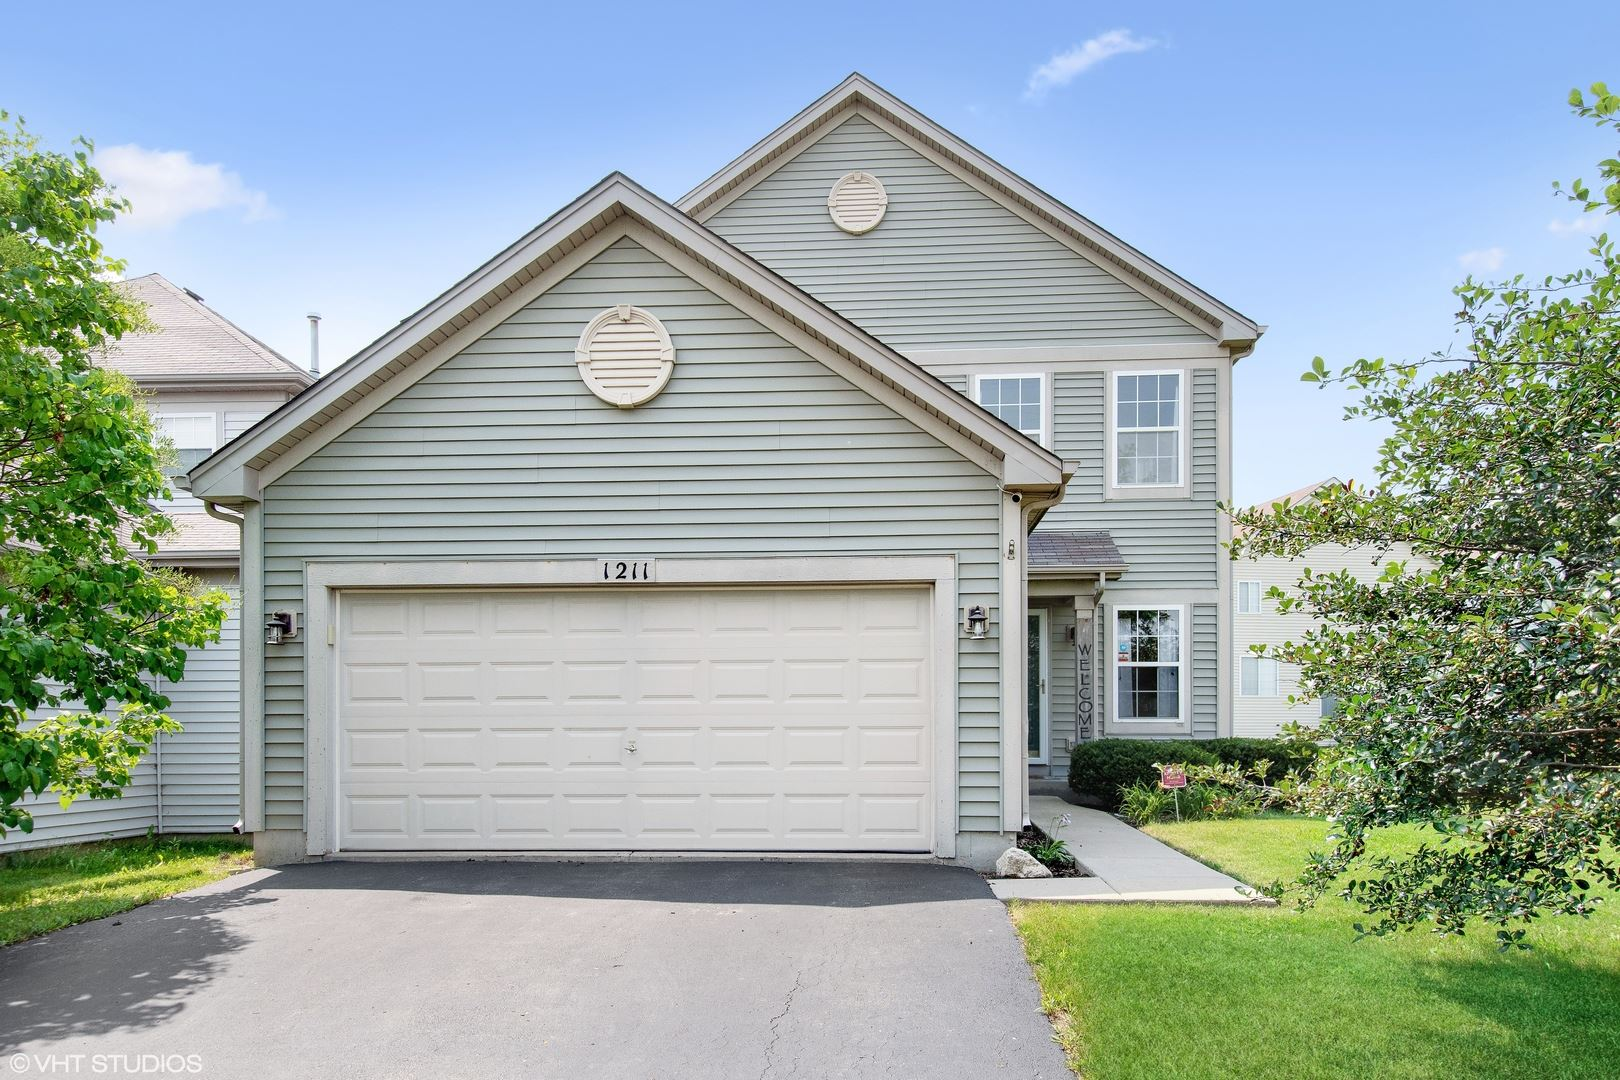 Photo of 1211 Fawnlily Circle, Joliet, IL 60431 (MLS # 11156345)